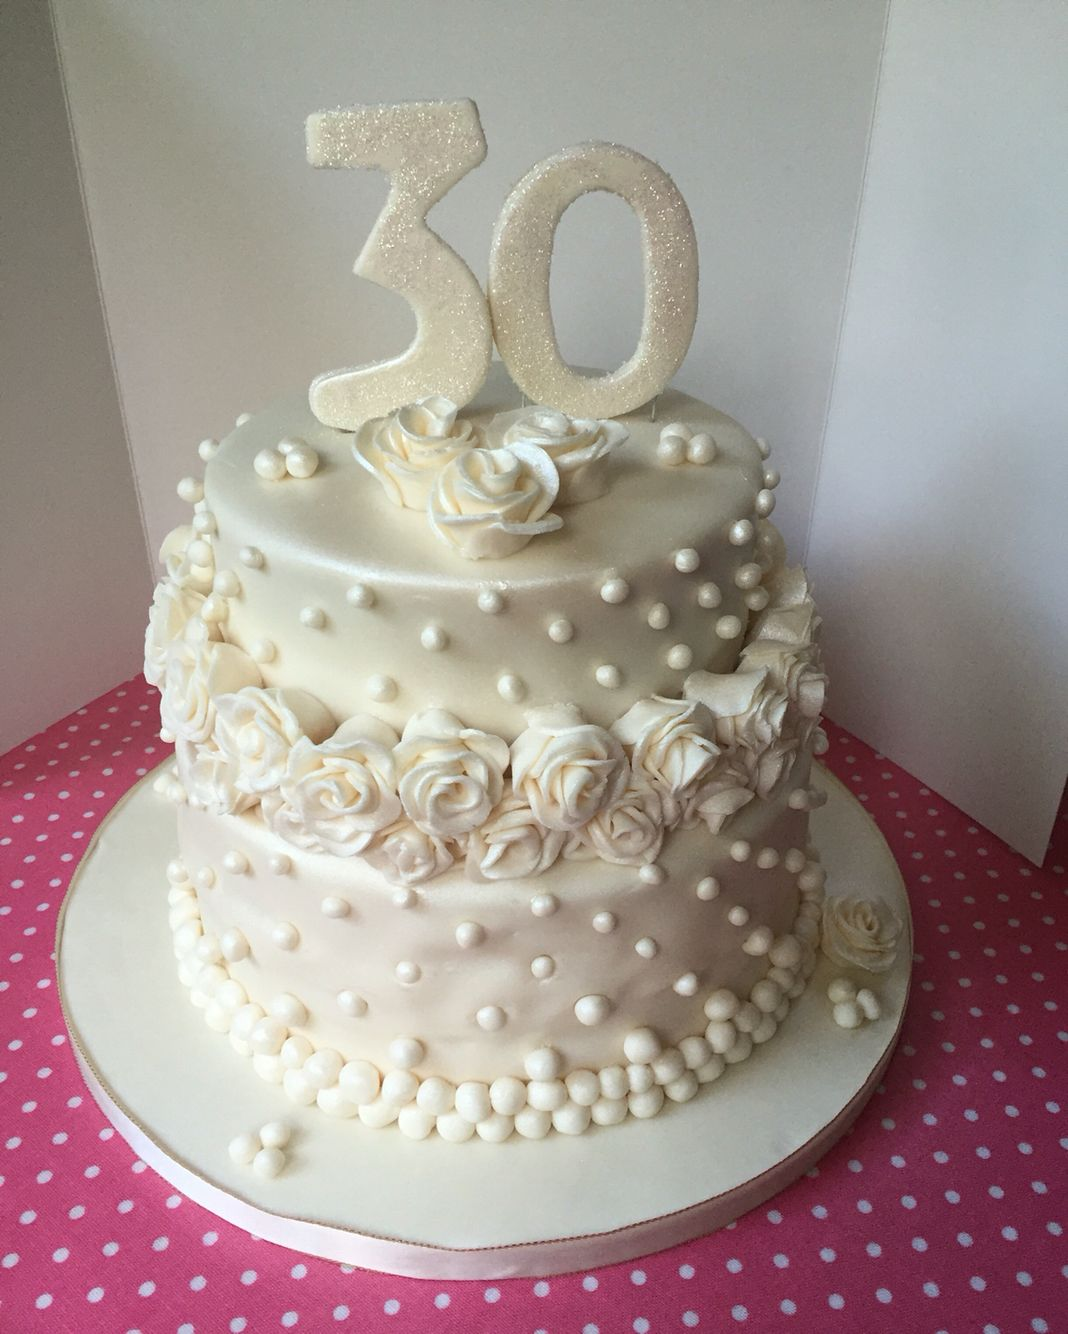 Cake Decorations For 30th Wedding Anniversary : 30th wedding anniversary cake - pearl anniversary so ...